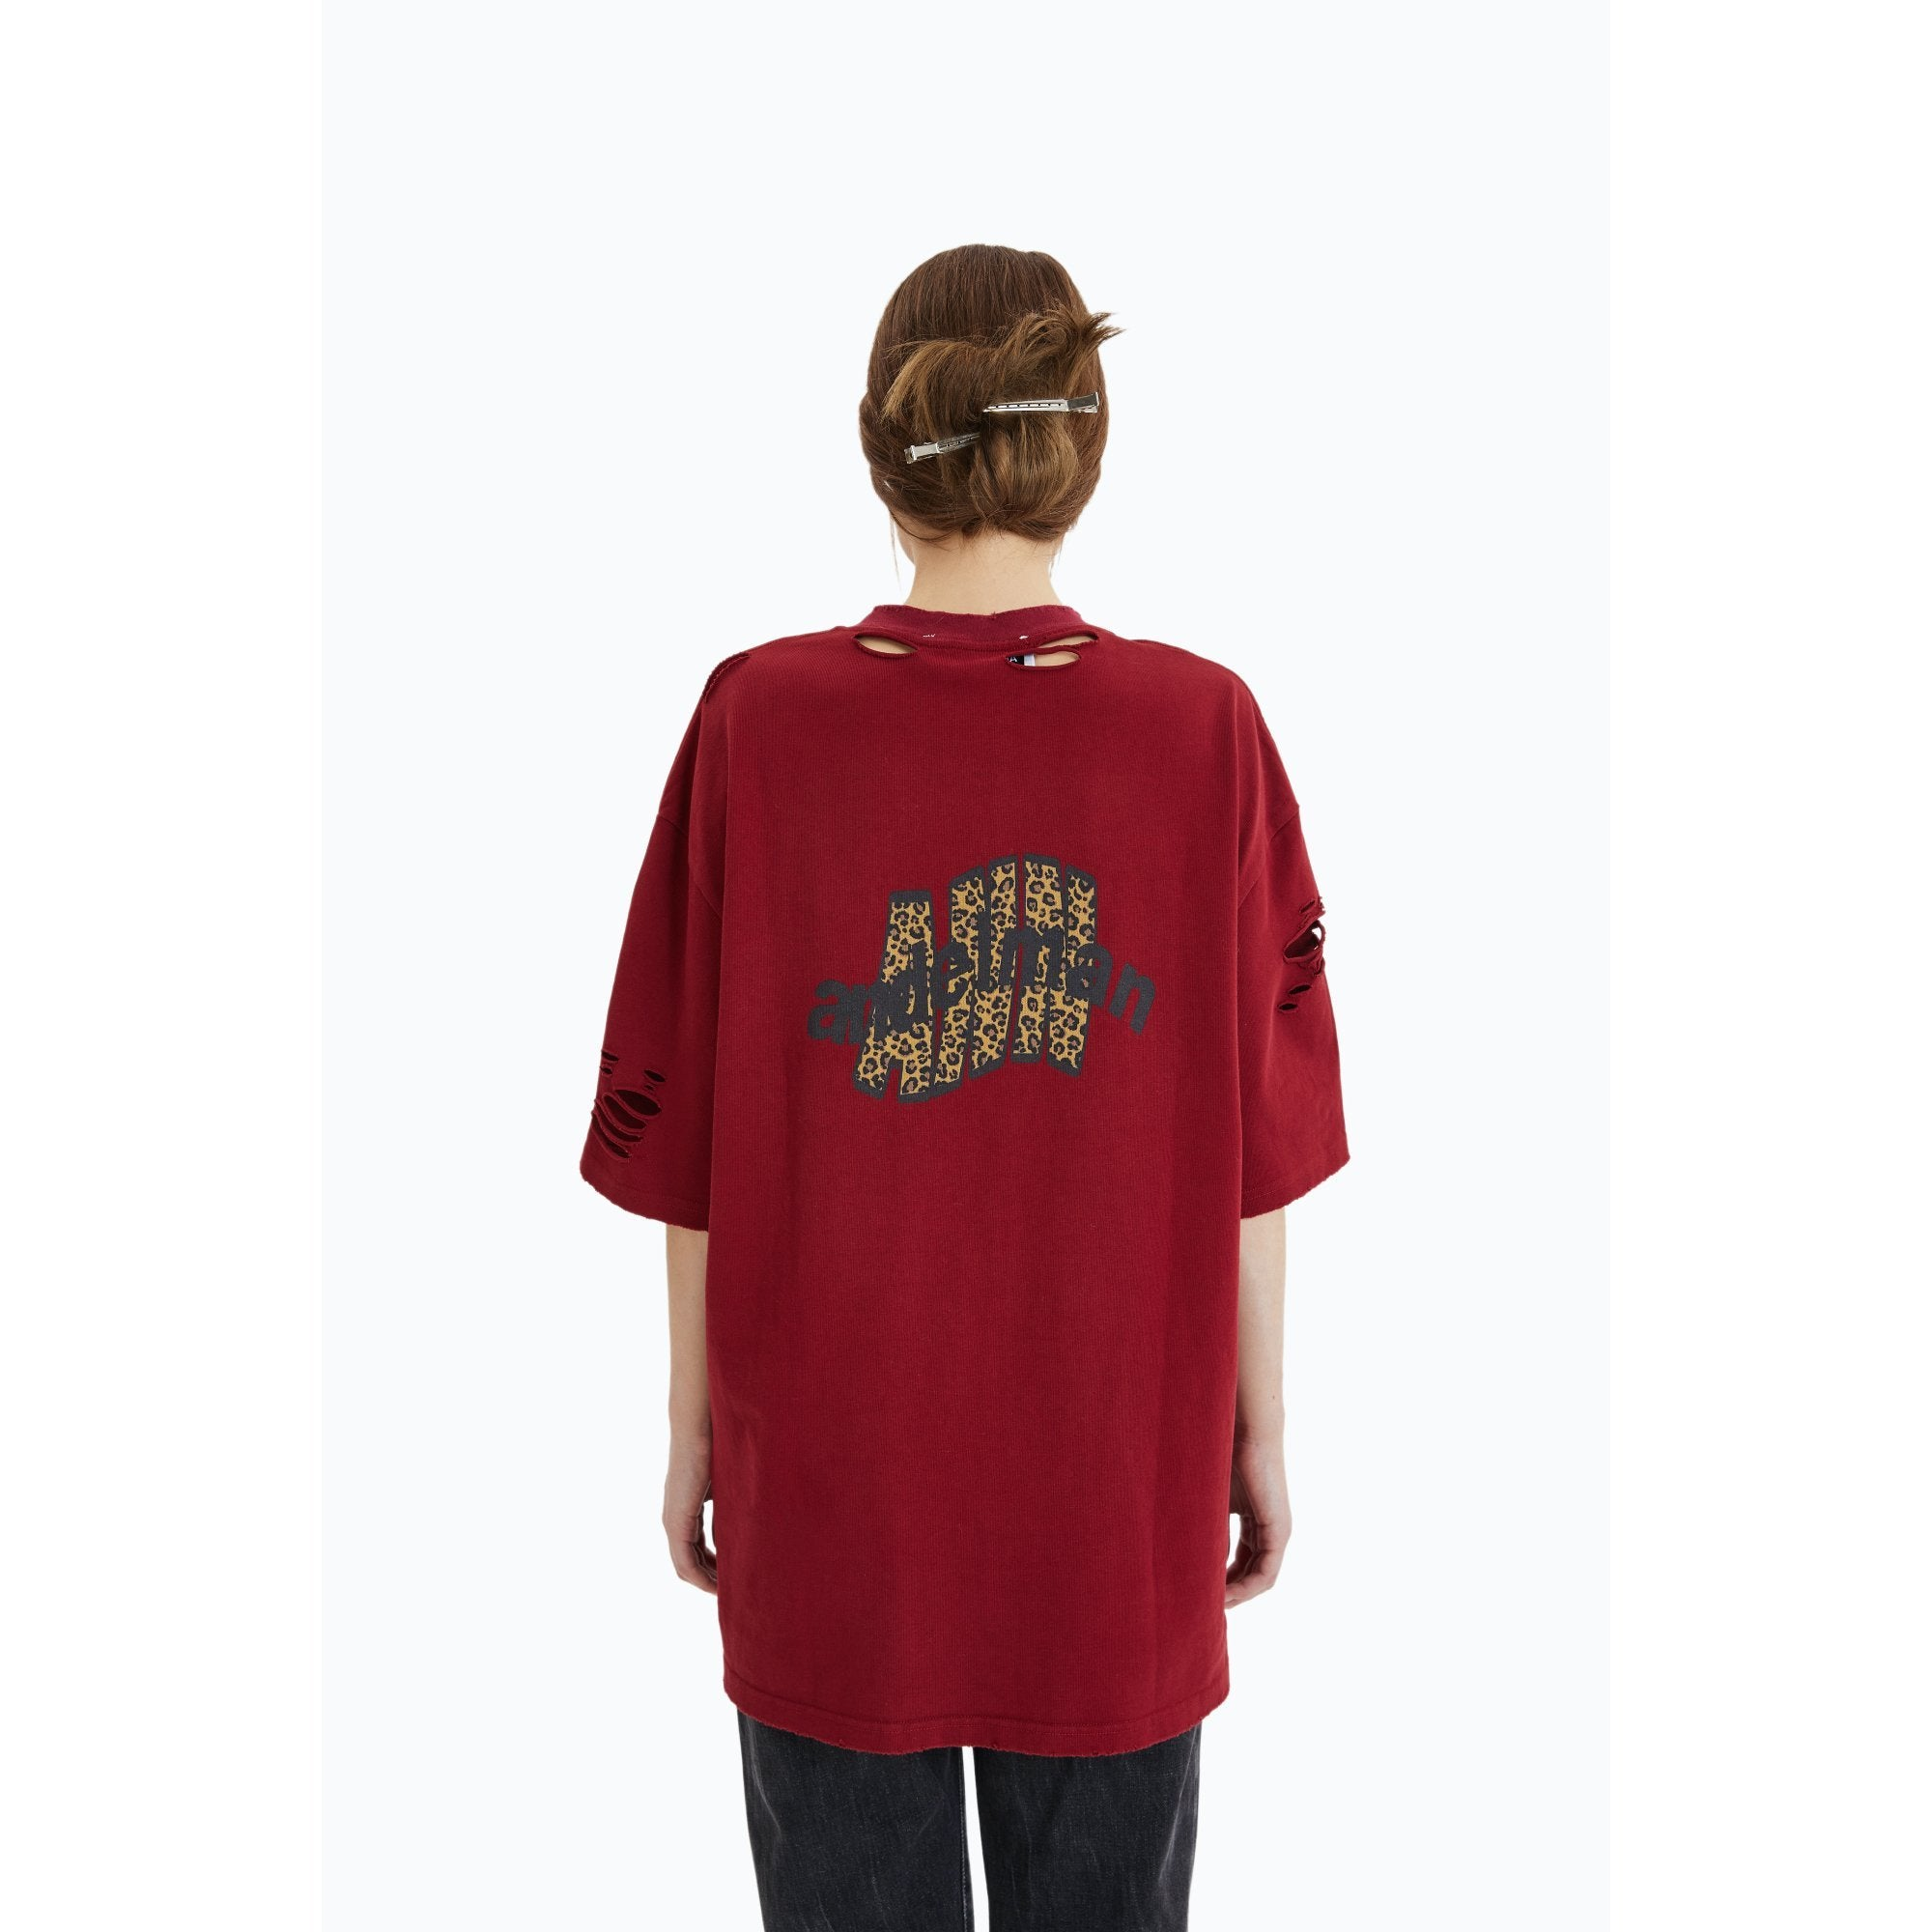 ANN ANDELMAN Leopard Logo Tee Red | MADA IN CHINA